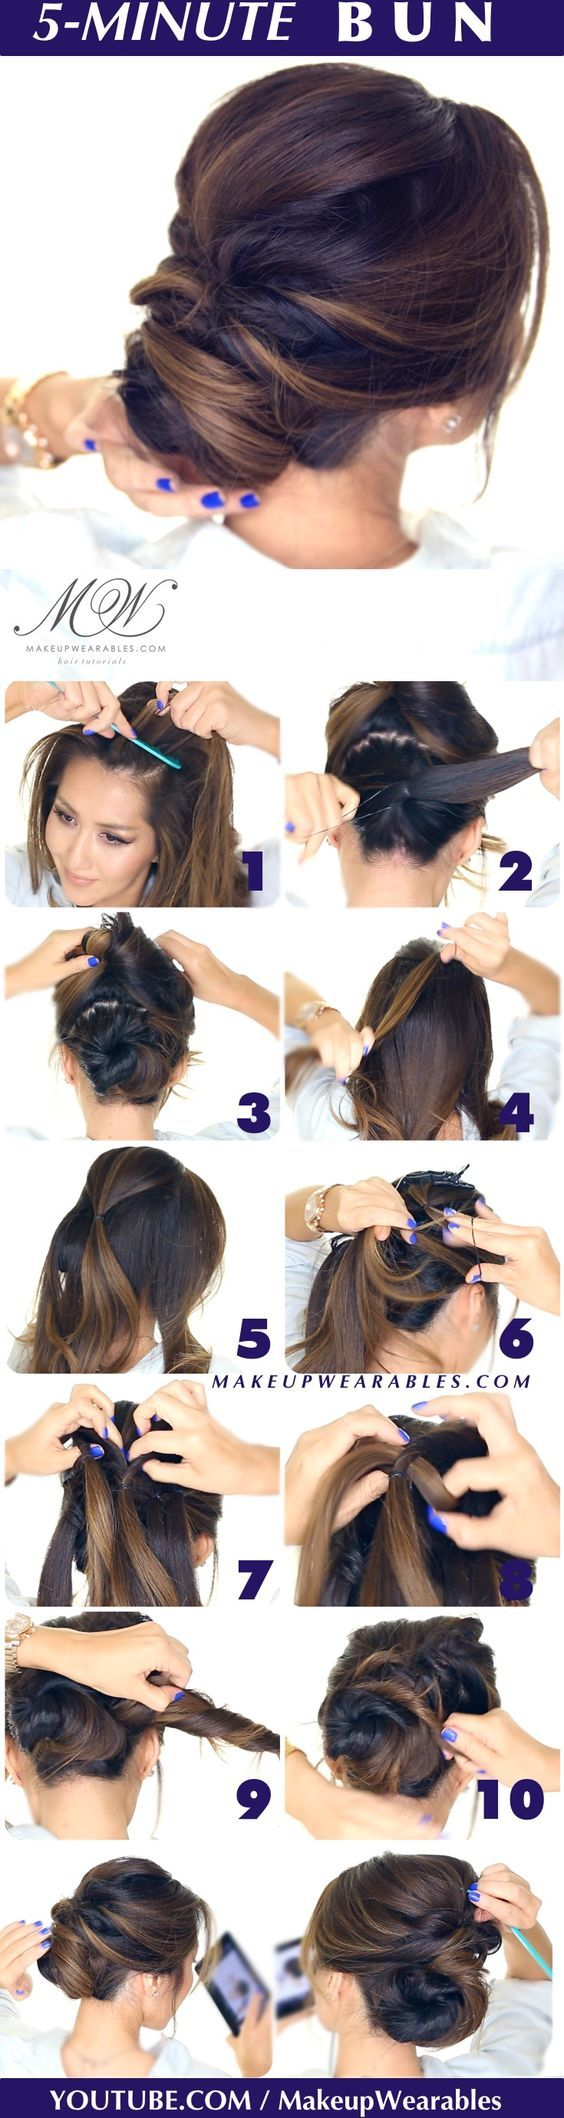 hair tutorial – easy romantic bun hairstyle – Elegant twisted bun hairstyles for homecoming prom wedding See more: http://www.makeupwearables.com/2015/09/romantic-updo-hairstyle.html